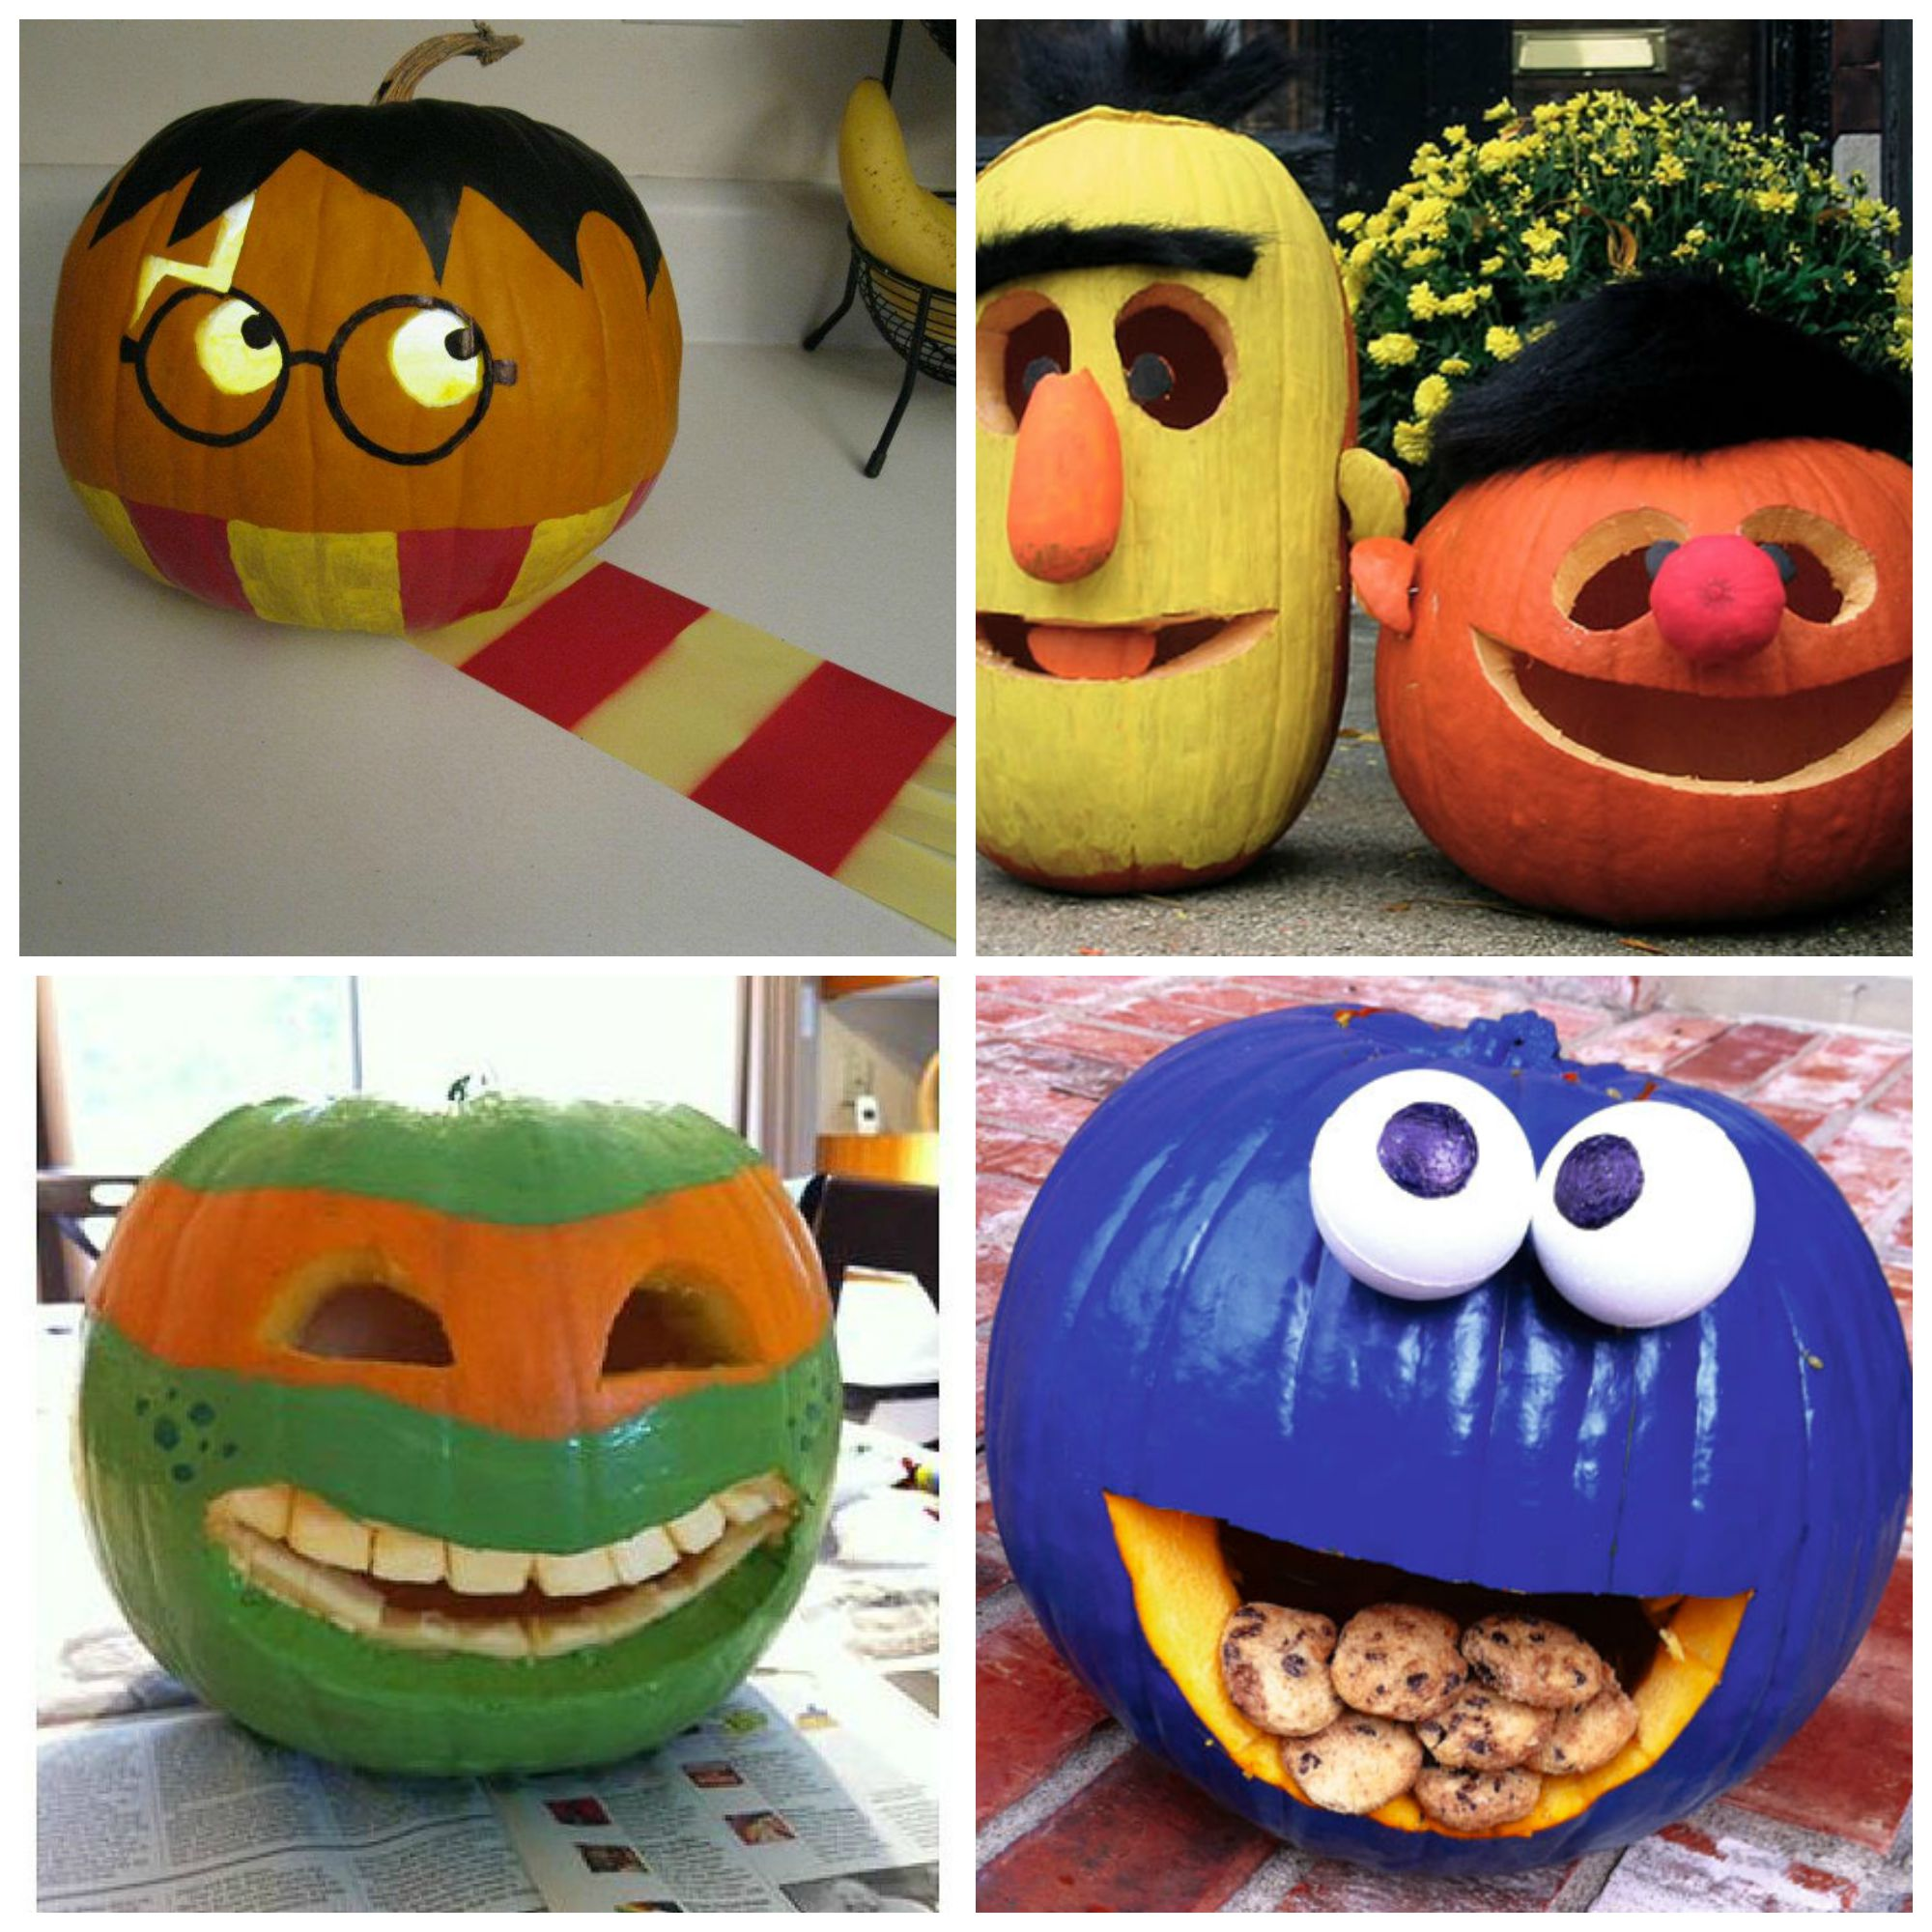 paint and carve